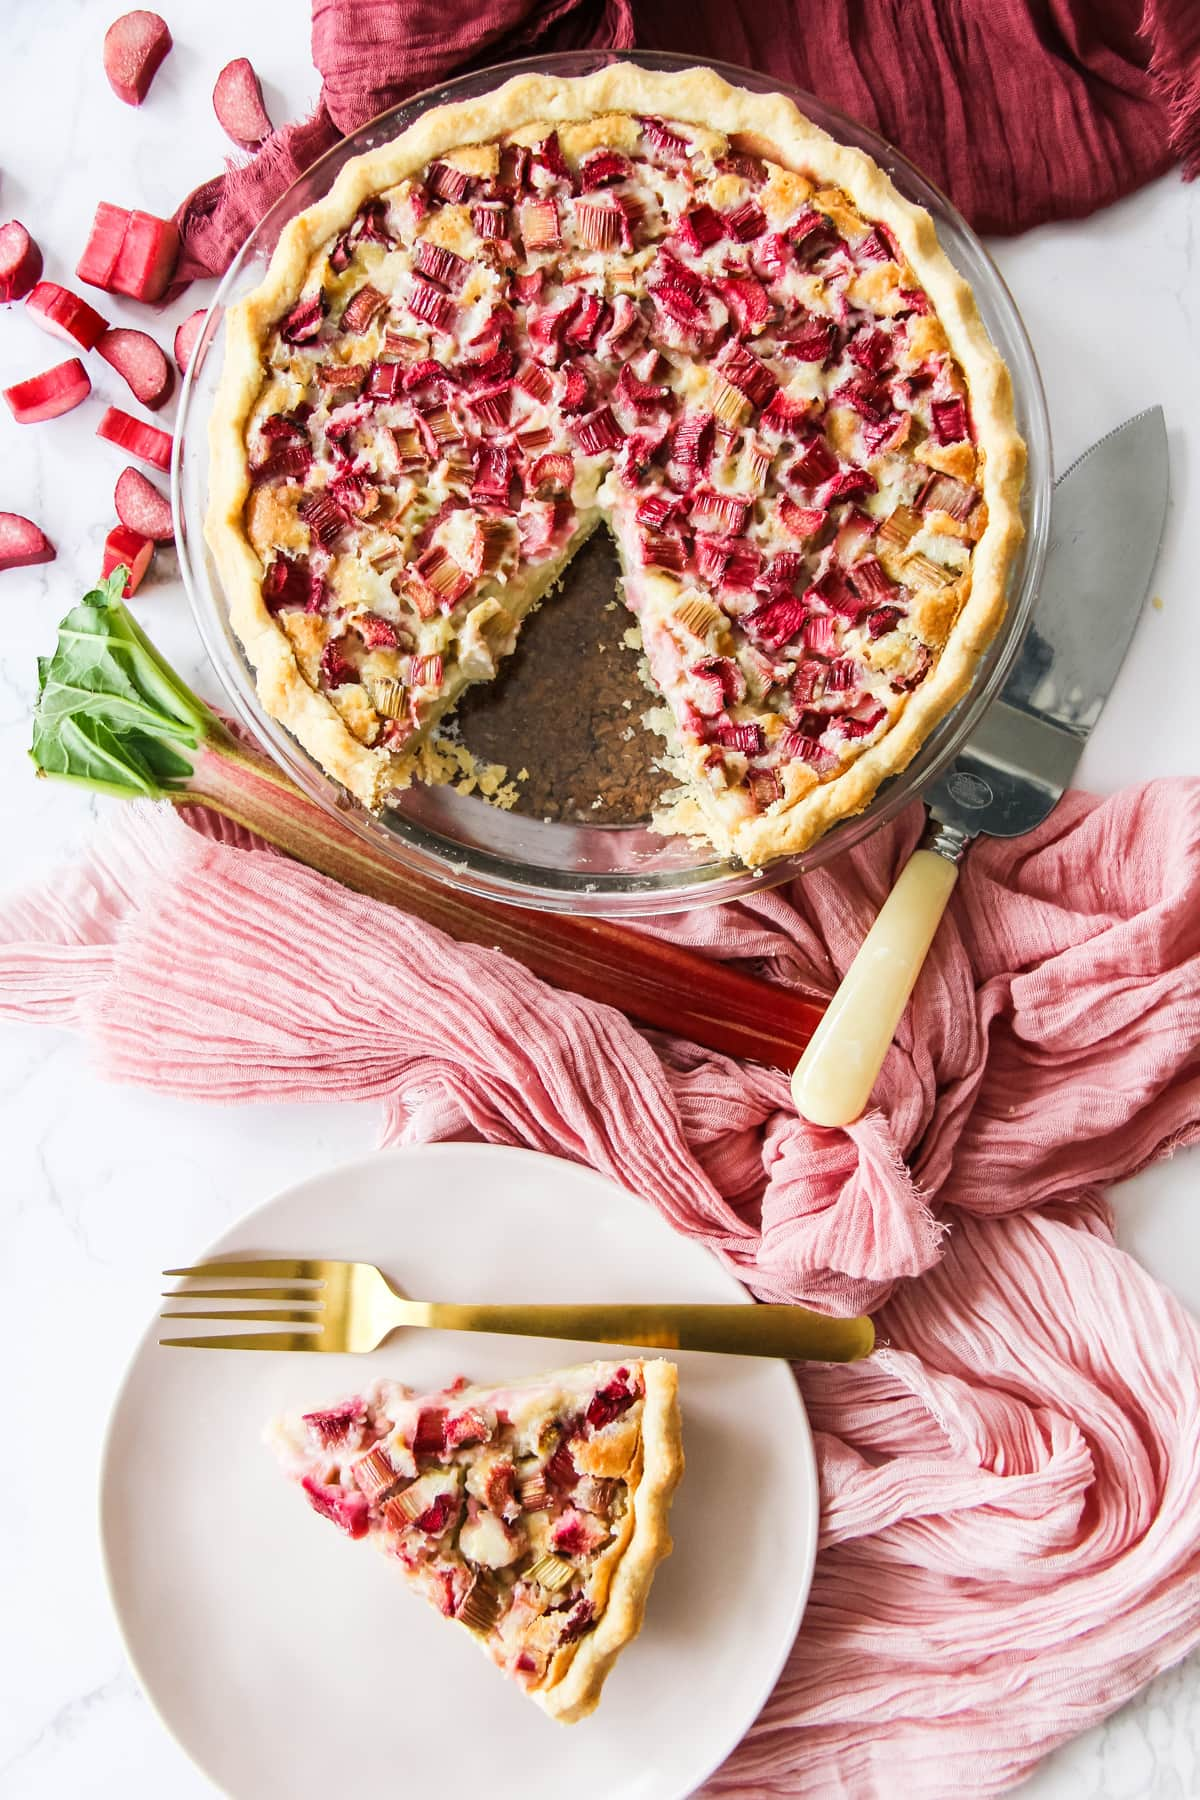 a top down view of a baked rhubarb custard pie with a slice cut out of it, as well as a soft pink plate with the slice of pie and a gold fork. in the background are pink and wine coloured napkins, a rhubarb stock, pieces of chopped rhubarb and a pie server